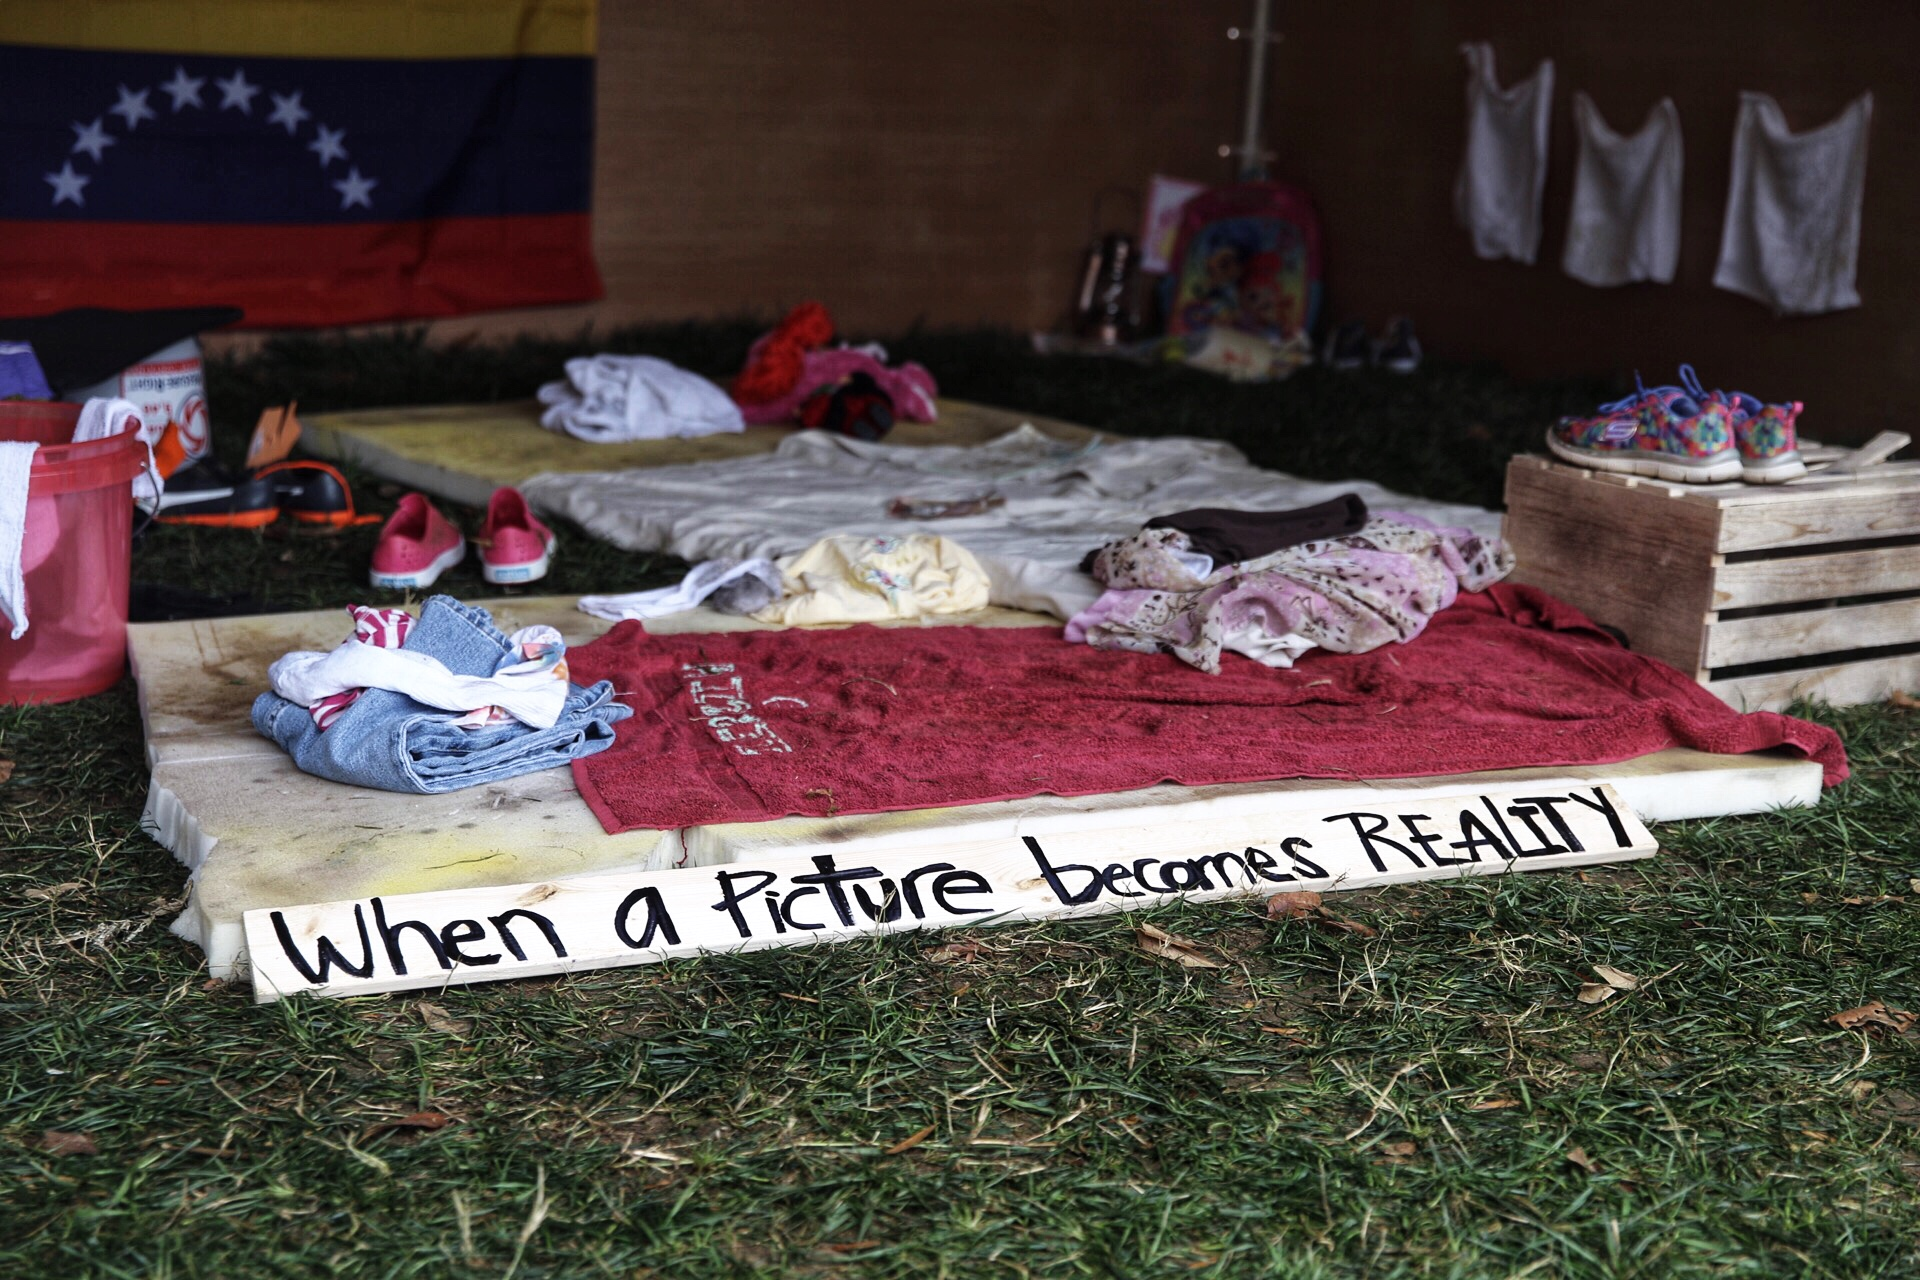 Interior of a tent showcasing the current humanitarian crisis in Venezuela with dirty mattresses, torn towels, ripped clothing, shoes with no laces, an empty water jug, and a pair of children's stuffed animals.